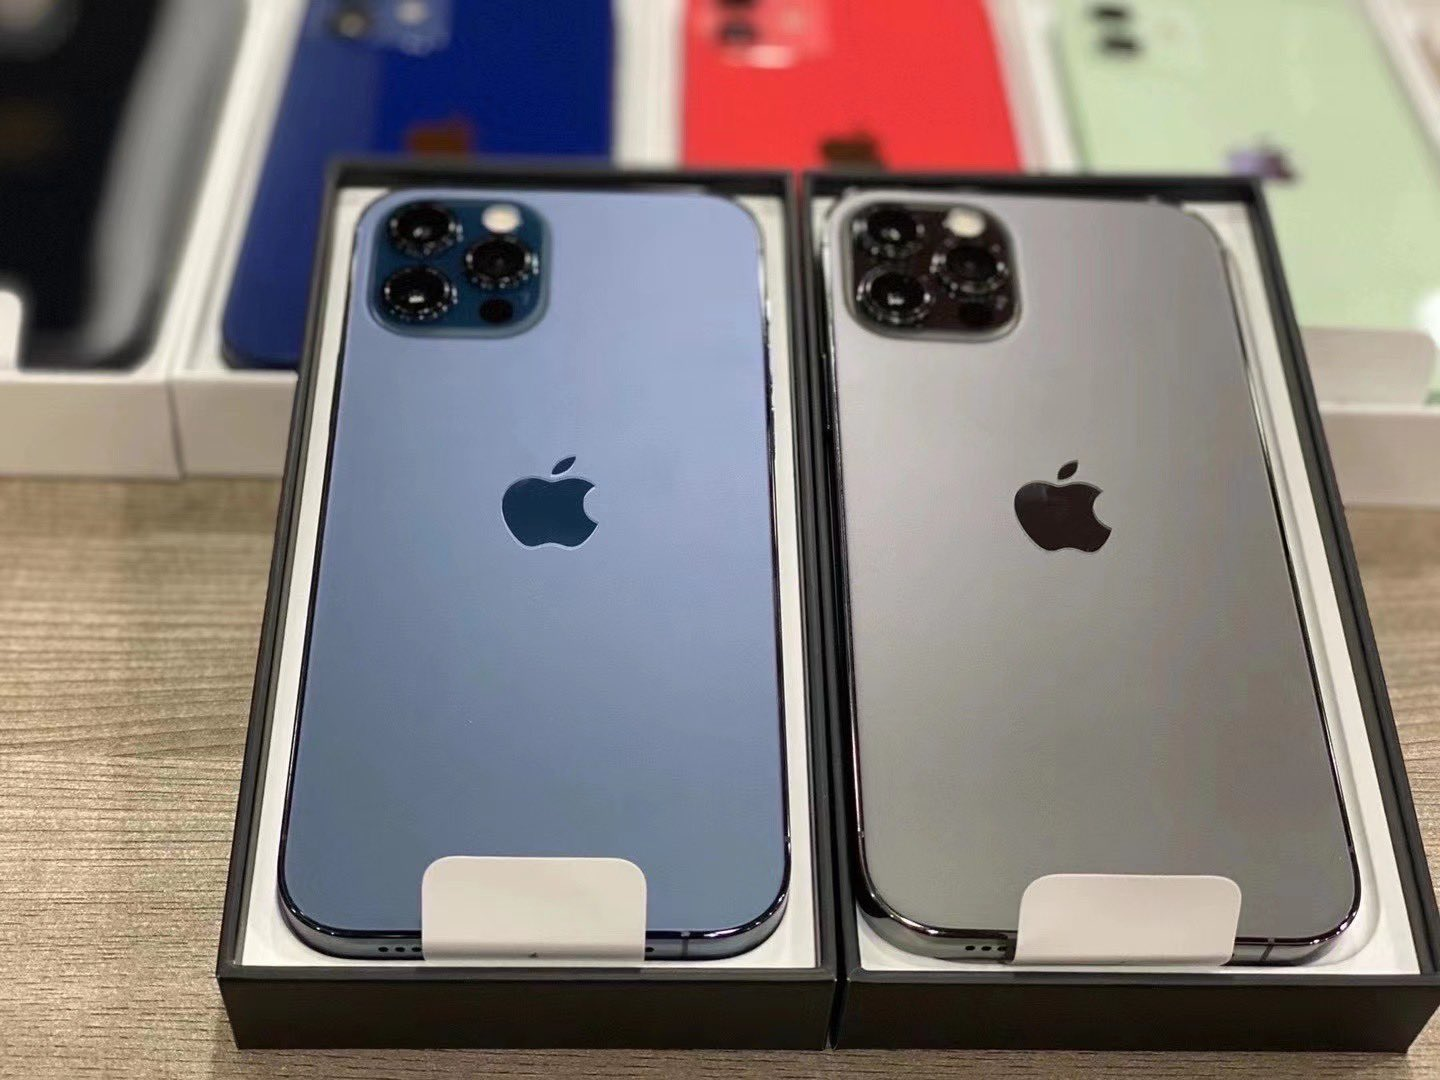 Apple iPhone 12 Pro 128GB = €600 EUR, iPhone 12 64GB = €480 EUR, iPhone 12 Pro Max 128GB = €650 EUR, Apple iPhone 11 Pro 64GB = €500 EUR, iPhone 11 Pro Max 64GB = €530 EUR, Whatsapp Chat: +27837724253